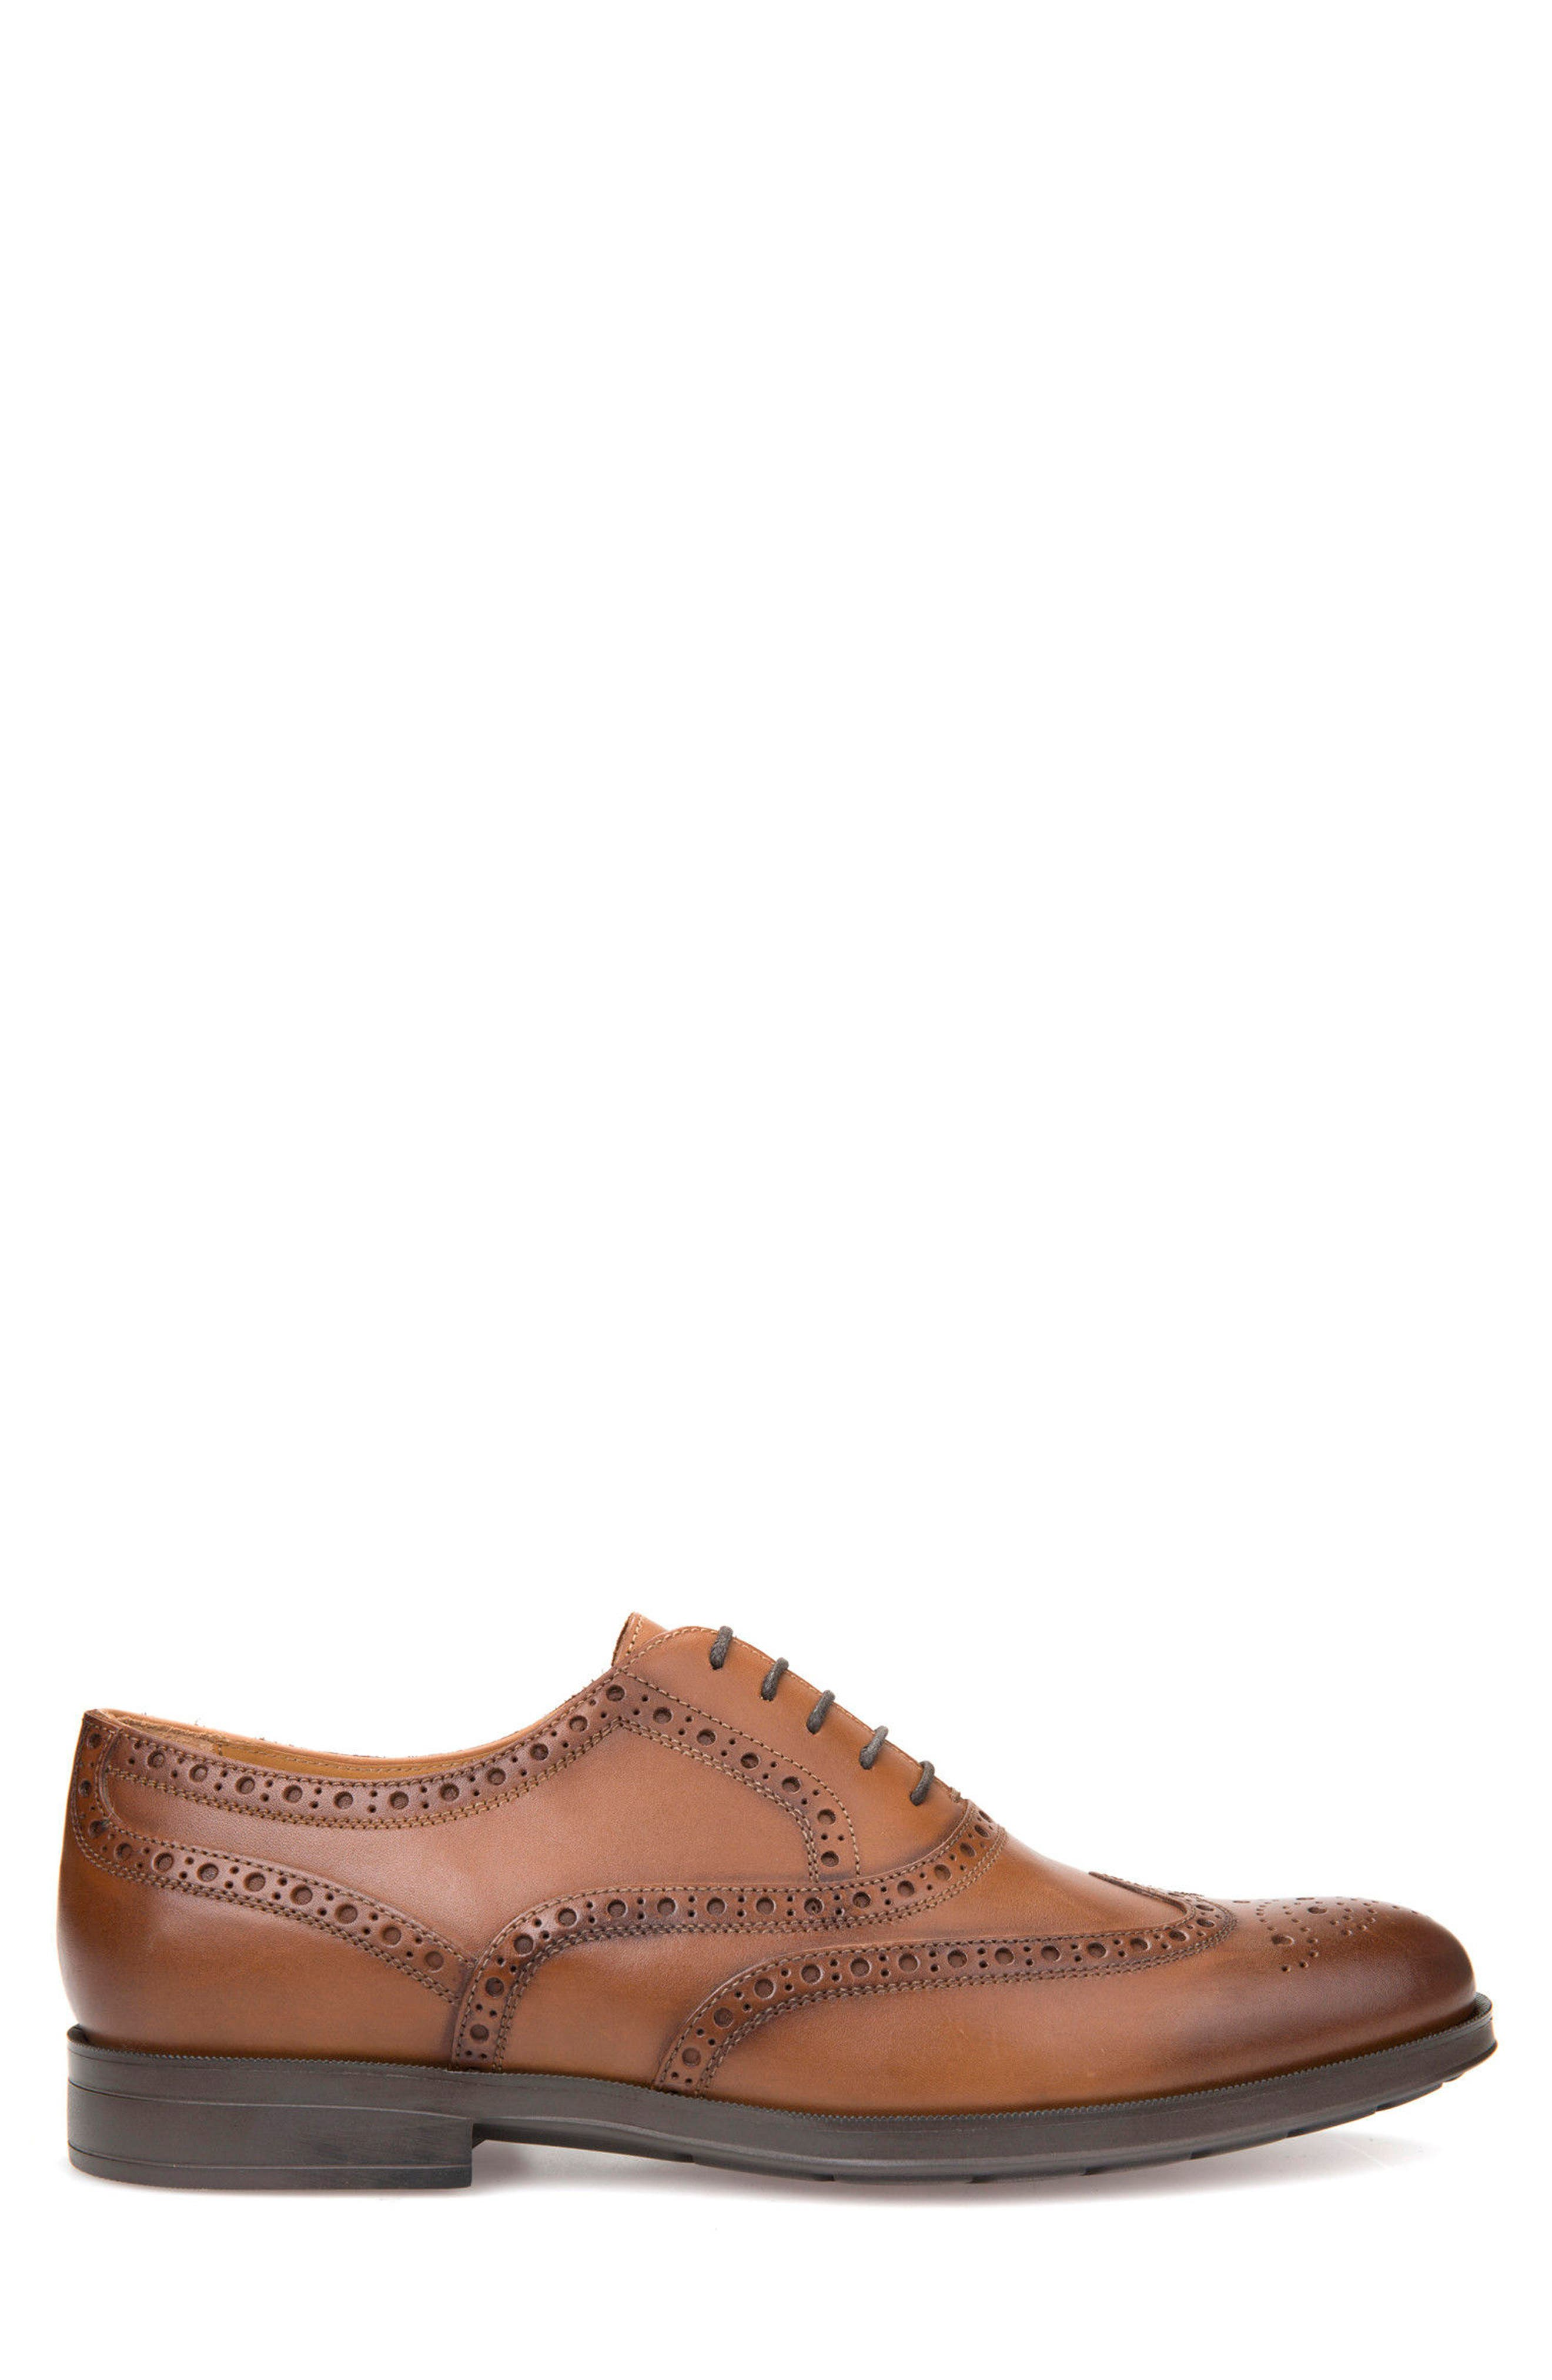 Hilstone 2Fit 2 Wingtip Oxford,                             Alternate thumbnail 3, color,                             Cognac Leather